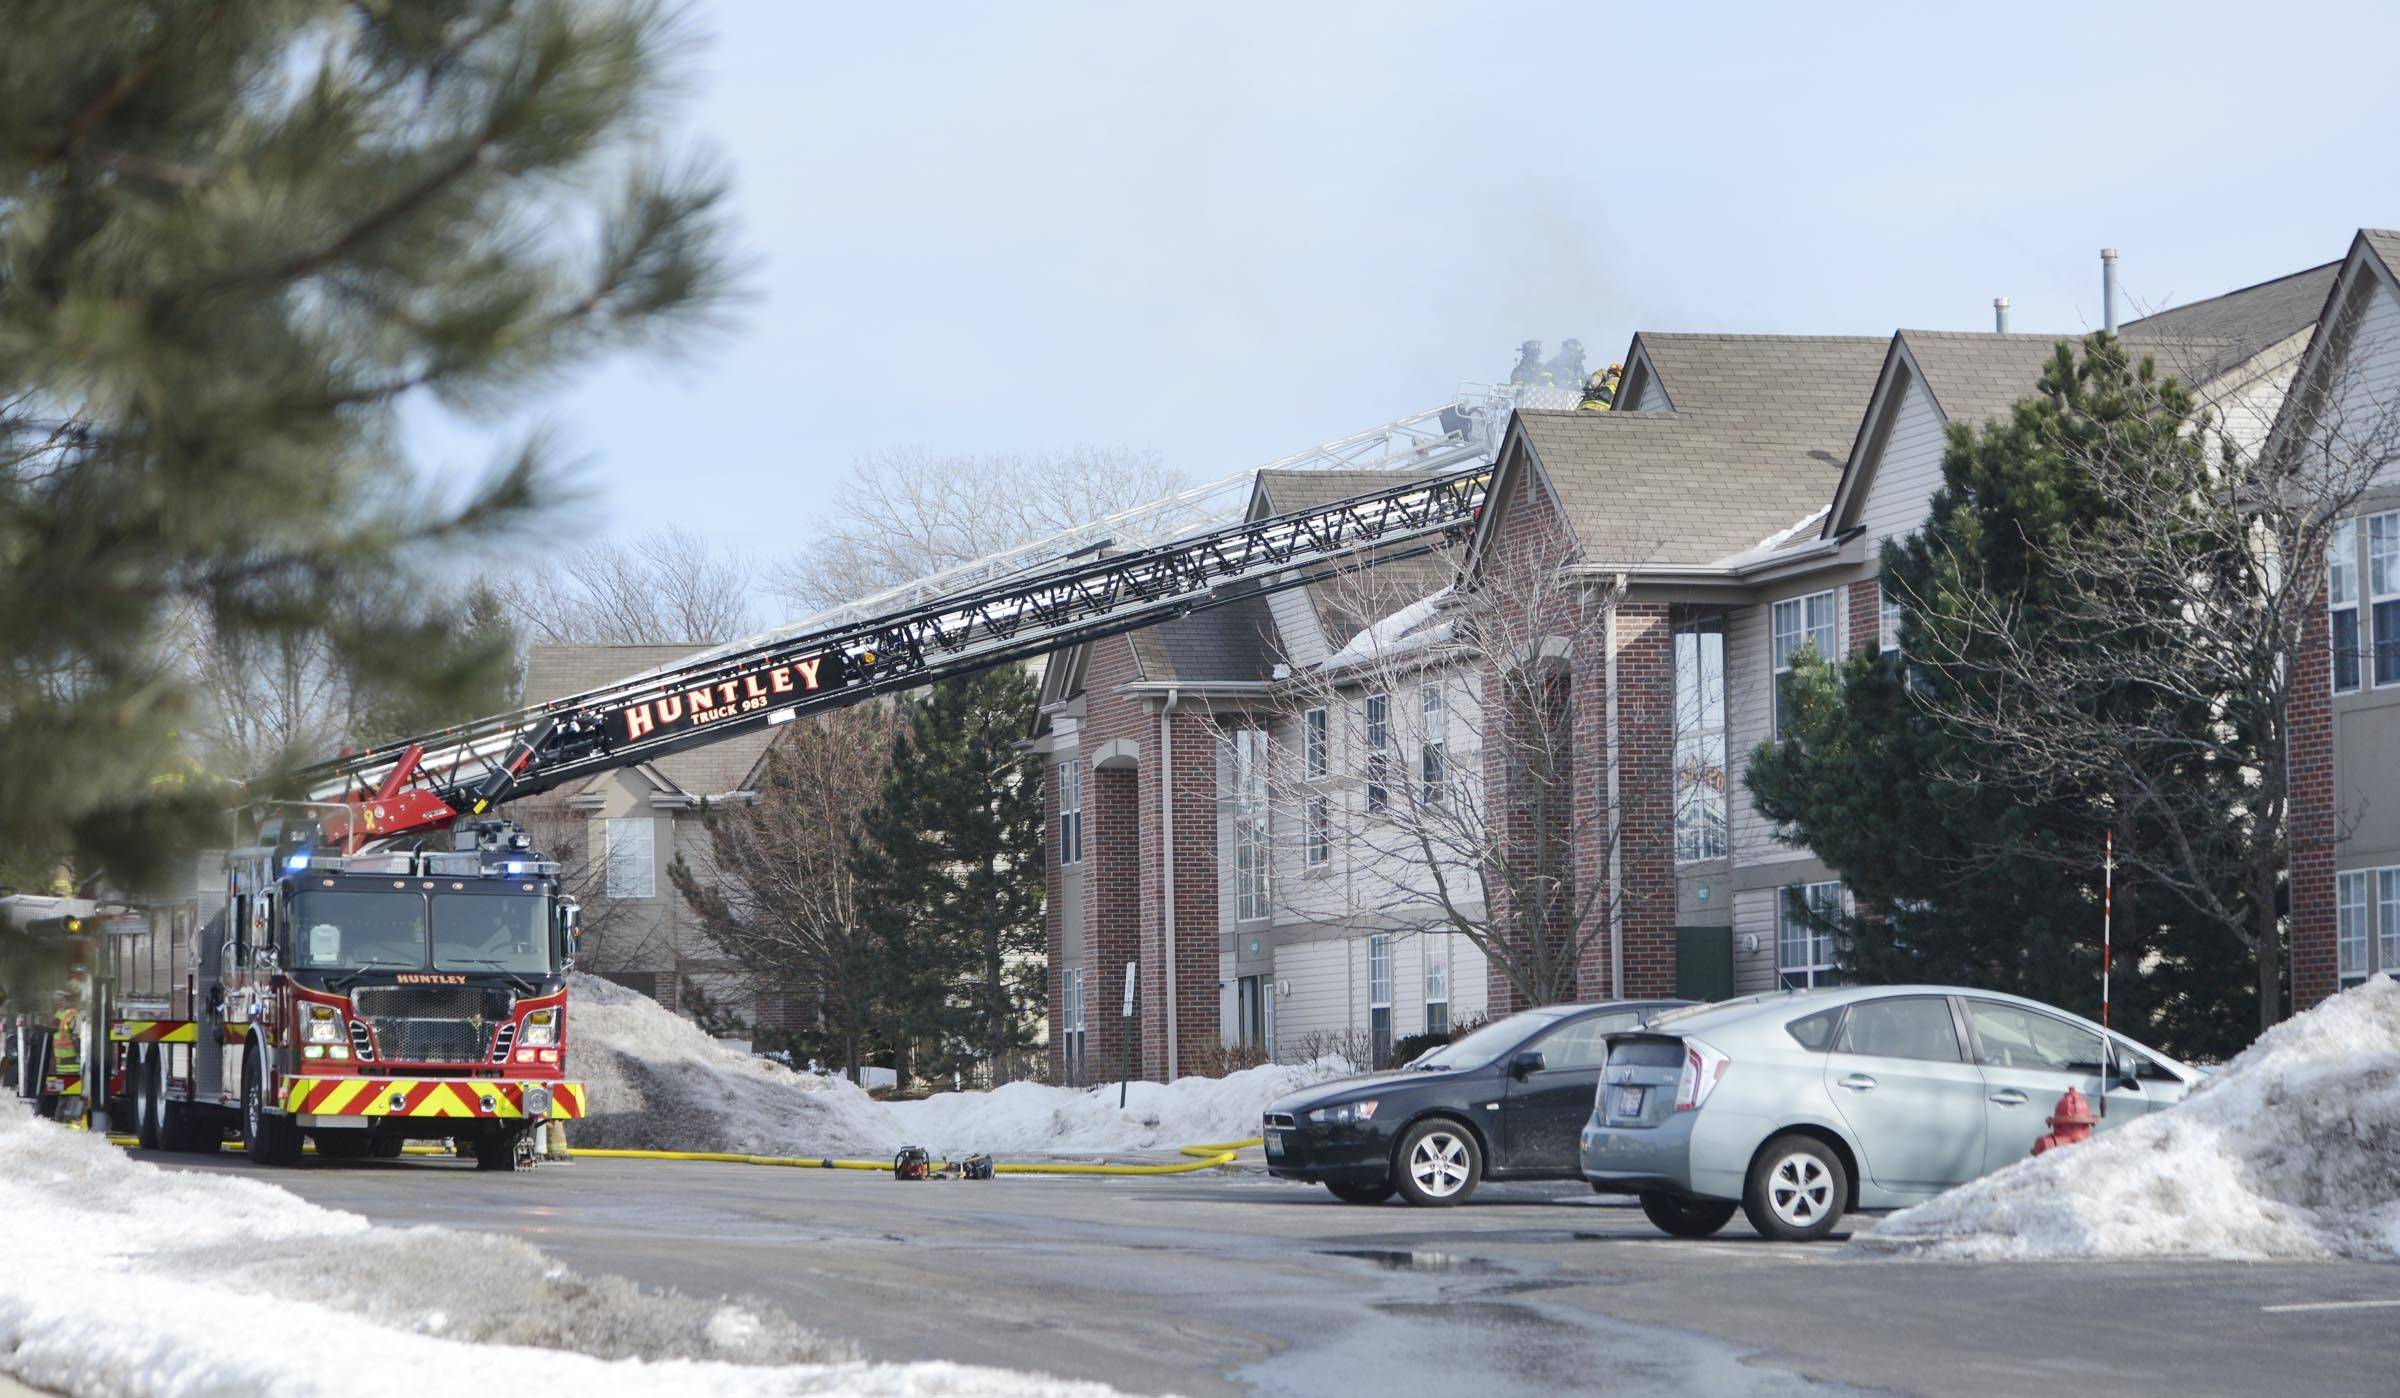 Firefighters open the roof of a condominium at 1623 Carlemont Drive in Crystal Lake as a fire spreads through the roof Monday afternoon.